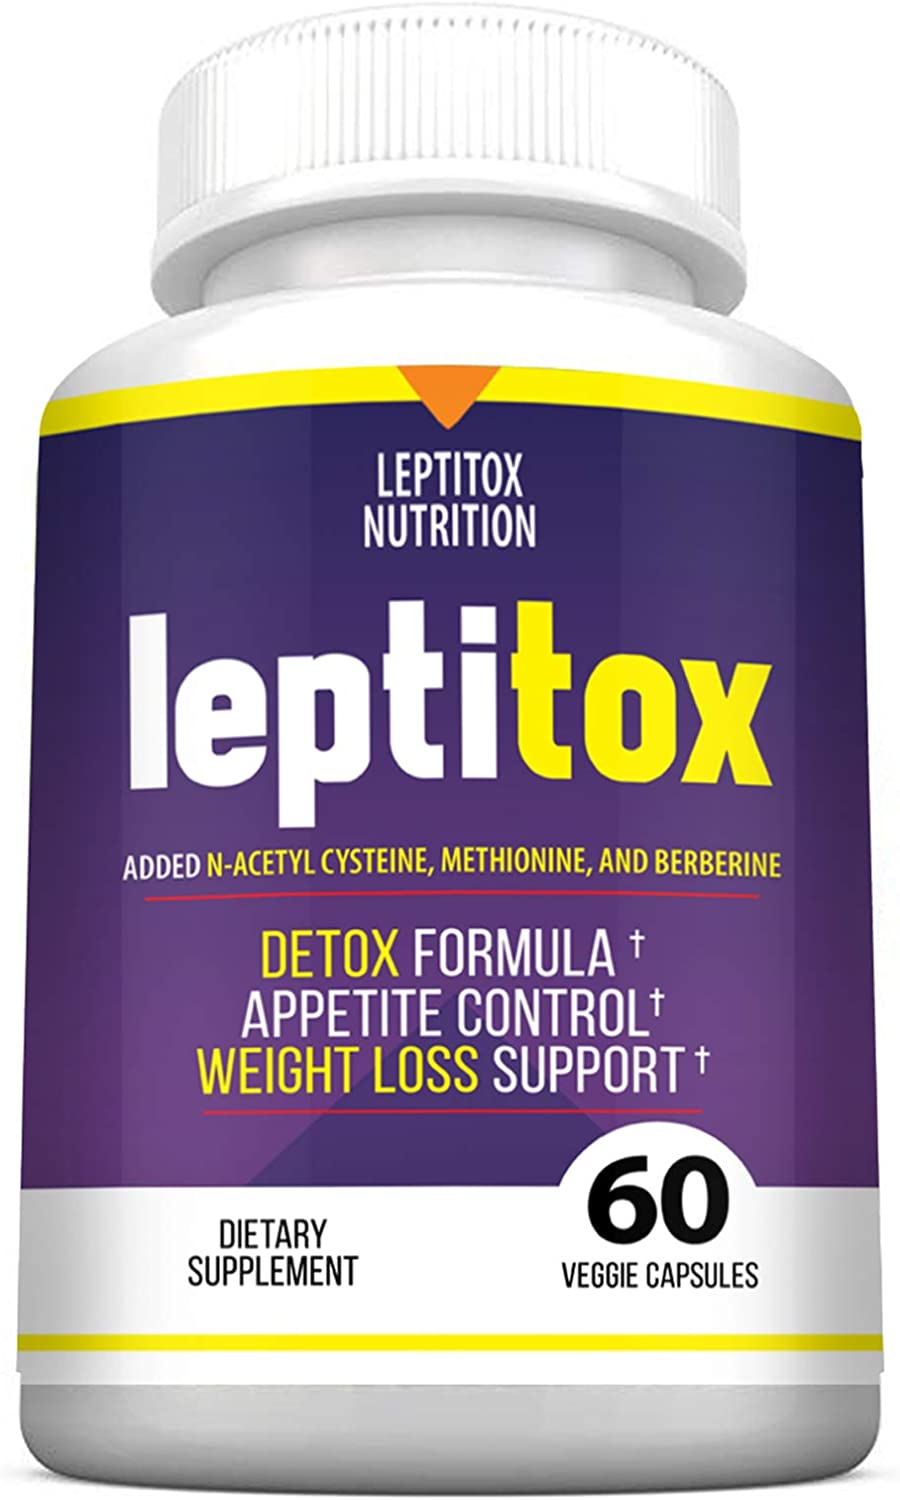 Retail Price Weight Loss  Leptitox